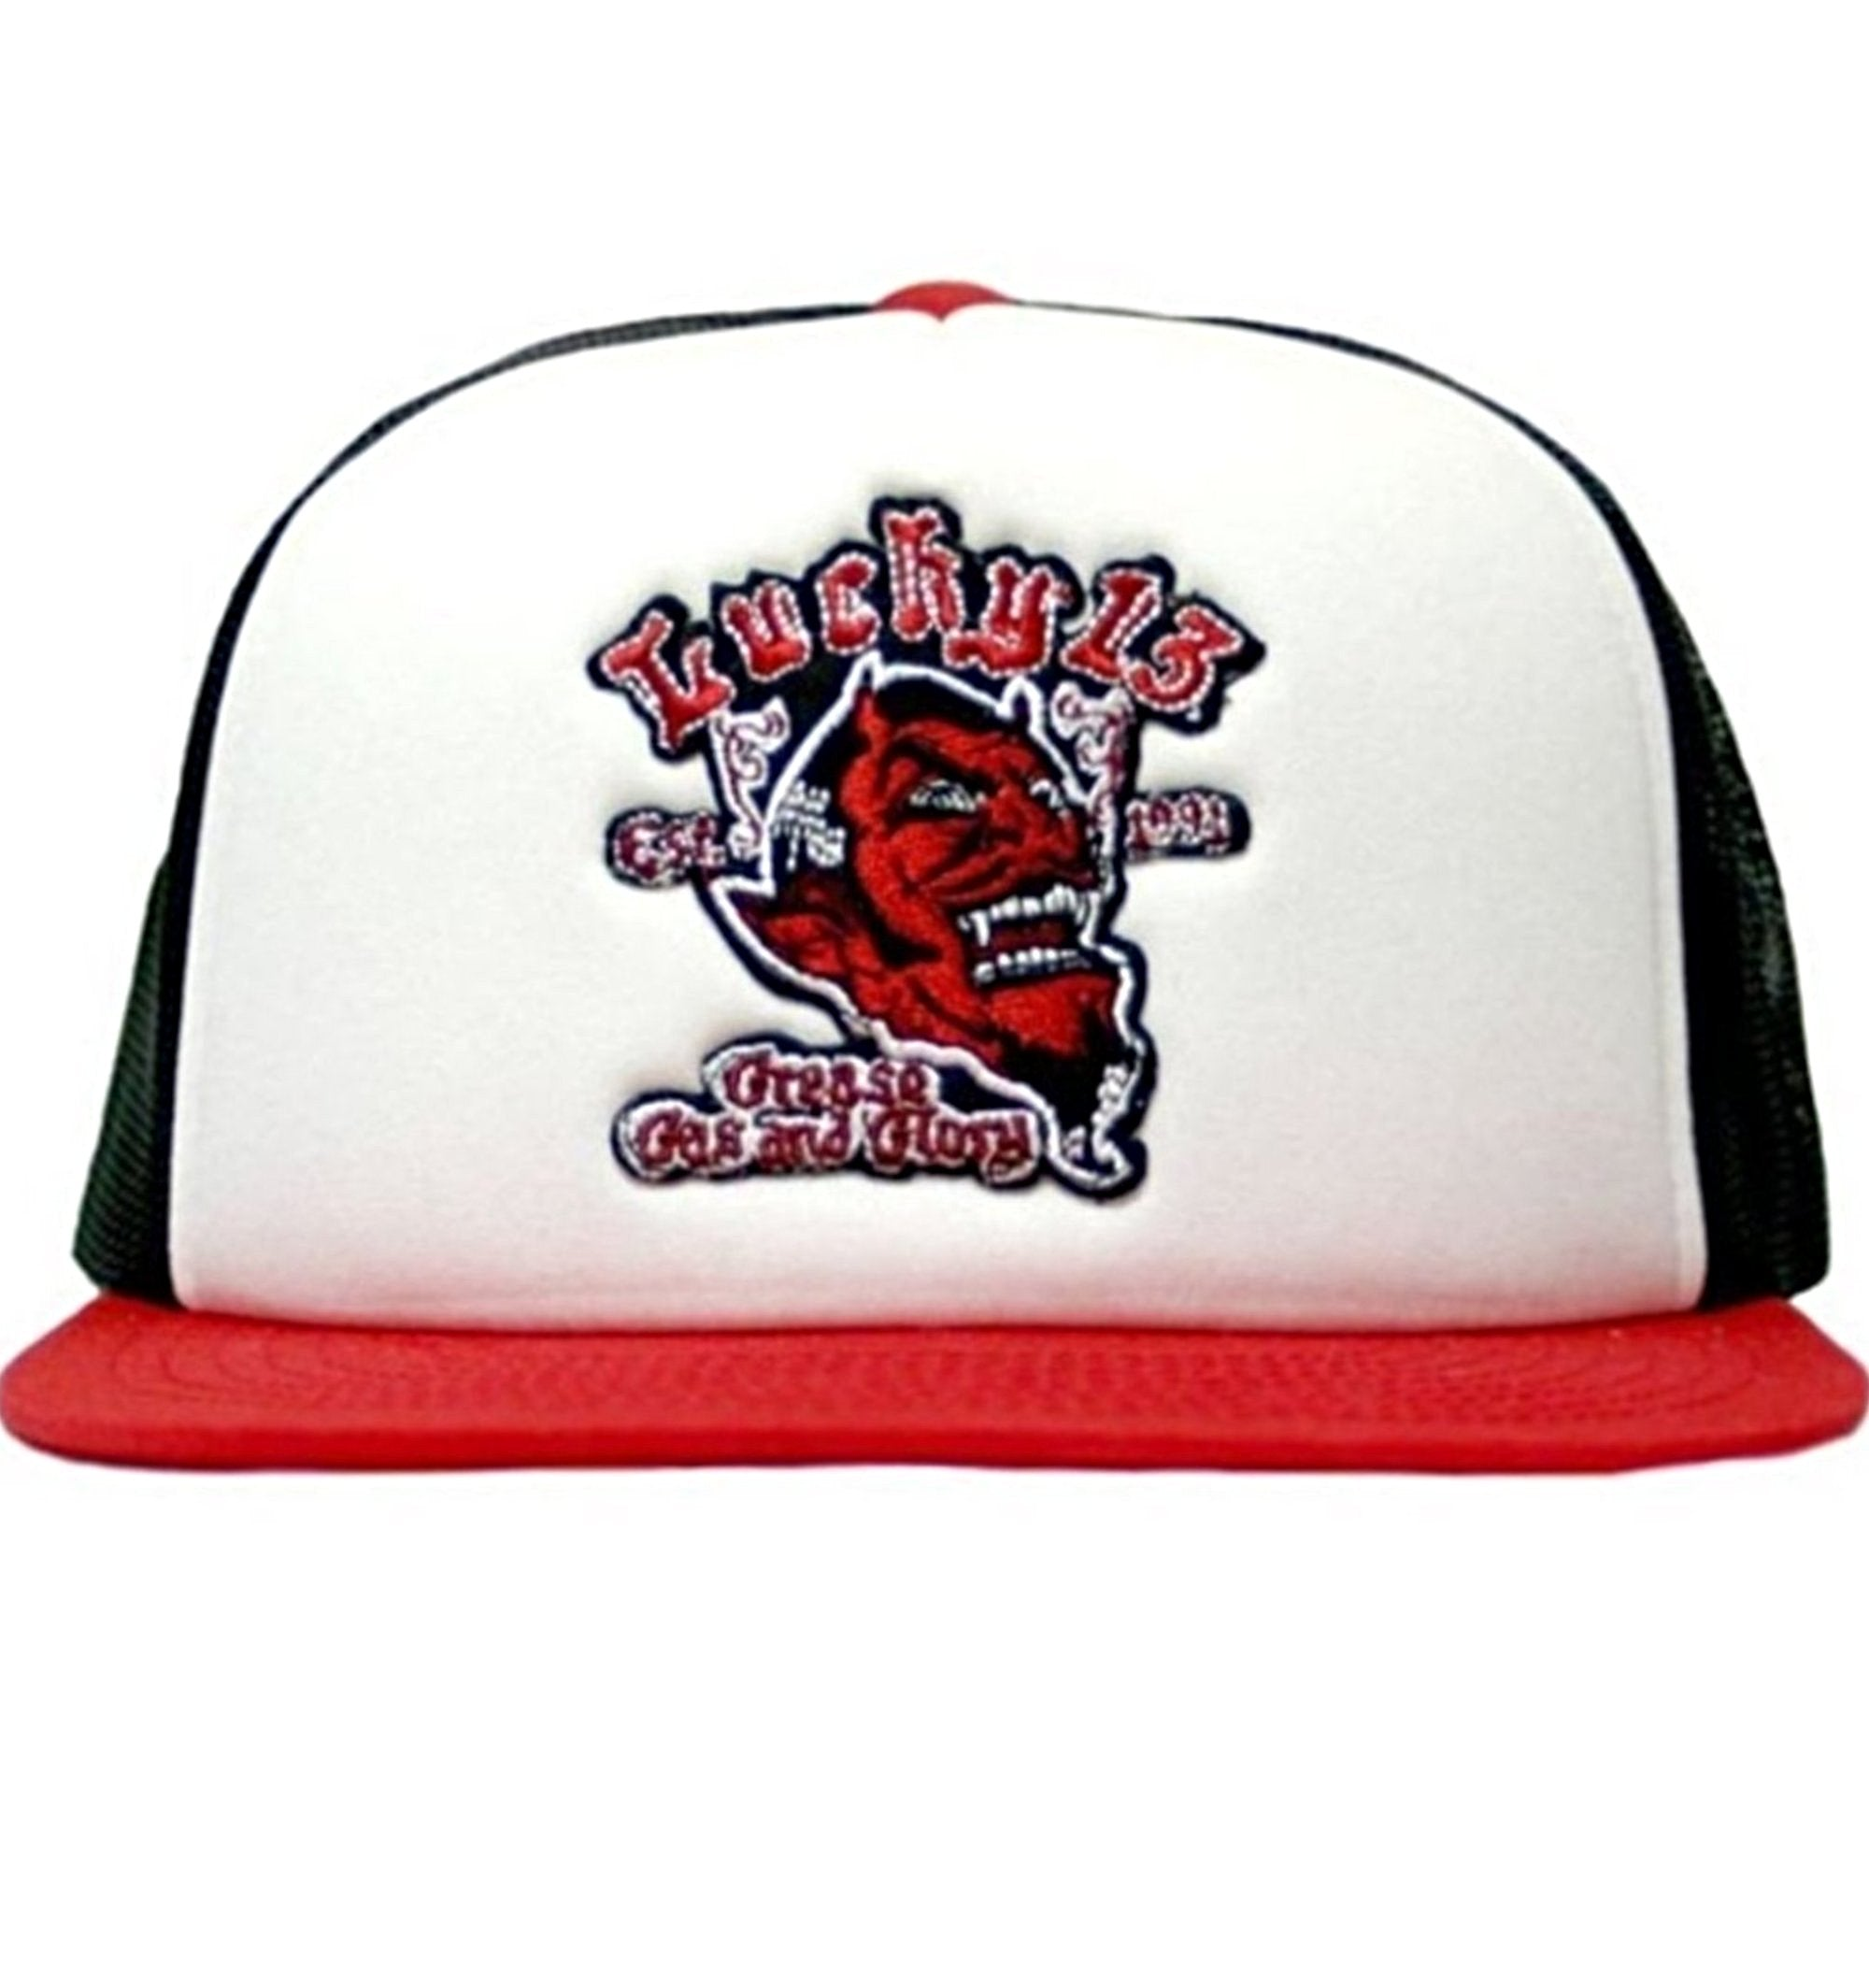 The GREASE, GAS & GLORY Traditional Trucker Cap